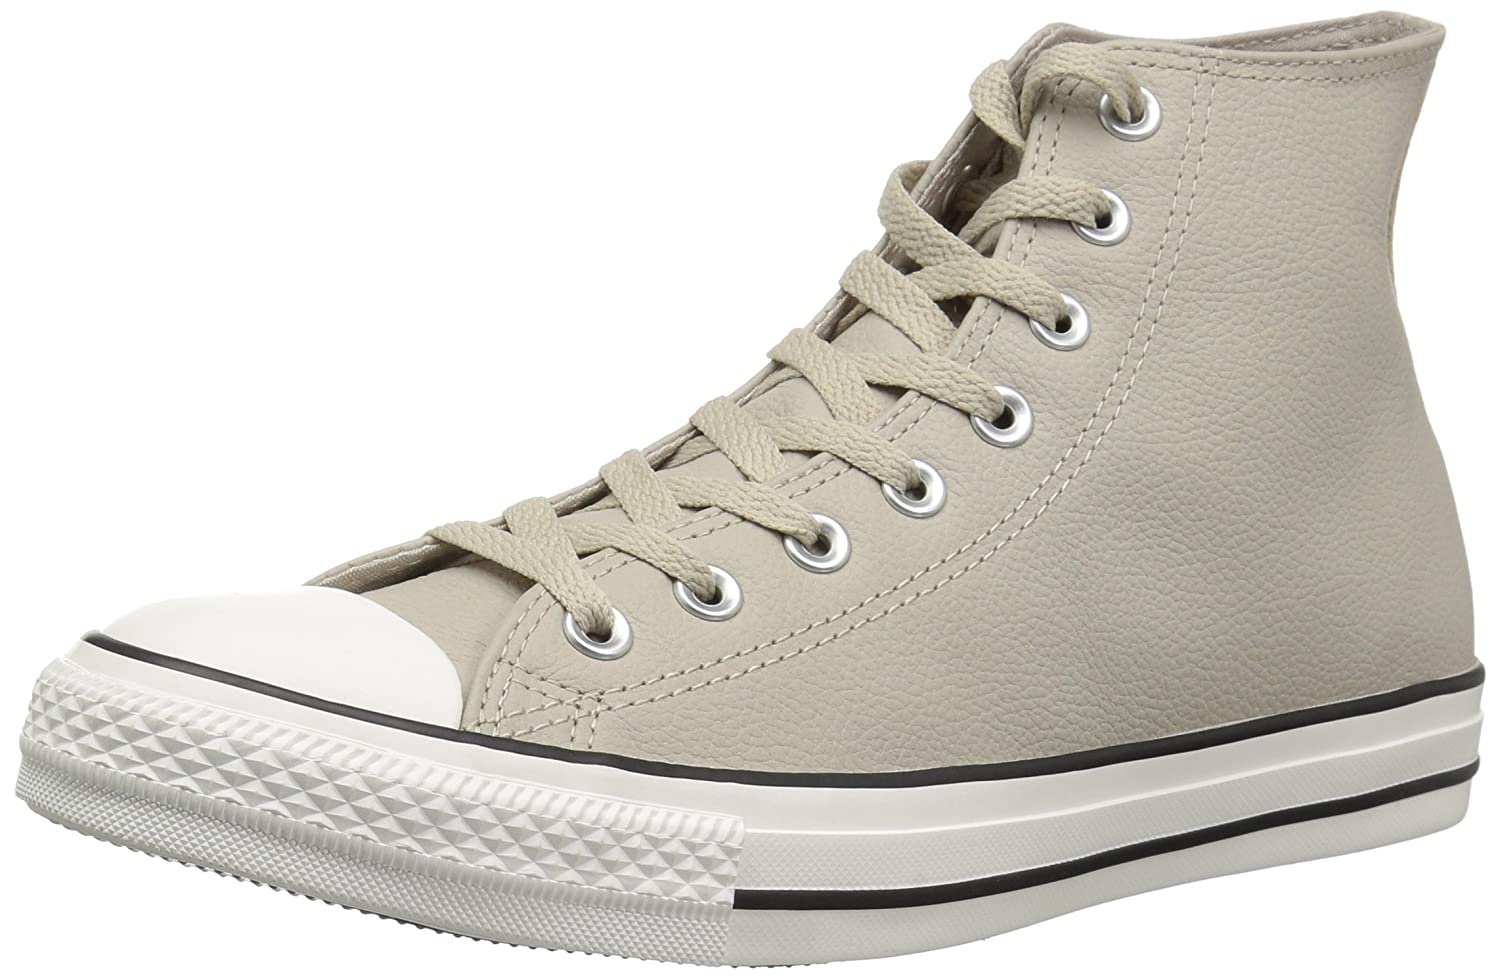 Converse Chuck Taylor All Star Tumbled Leather High Top Sneaker B07CQ9DZ2T 6.5 M US|Papyrus/Papyrus/Egret